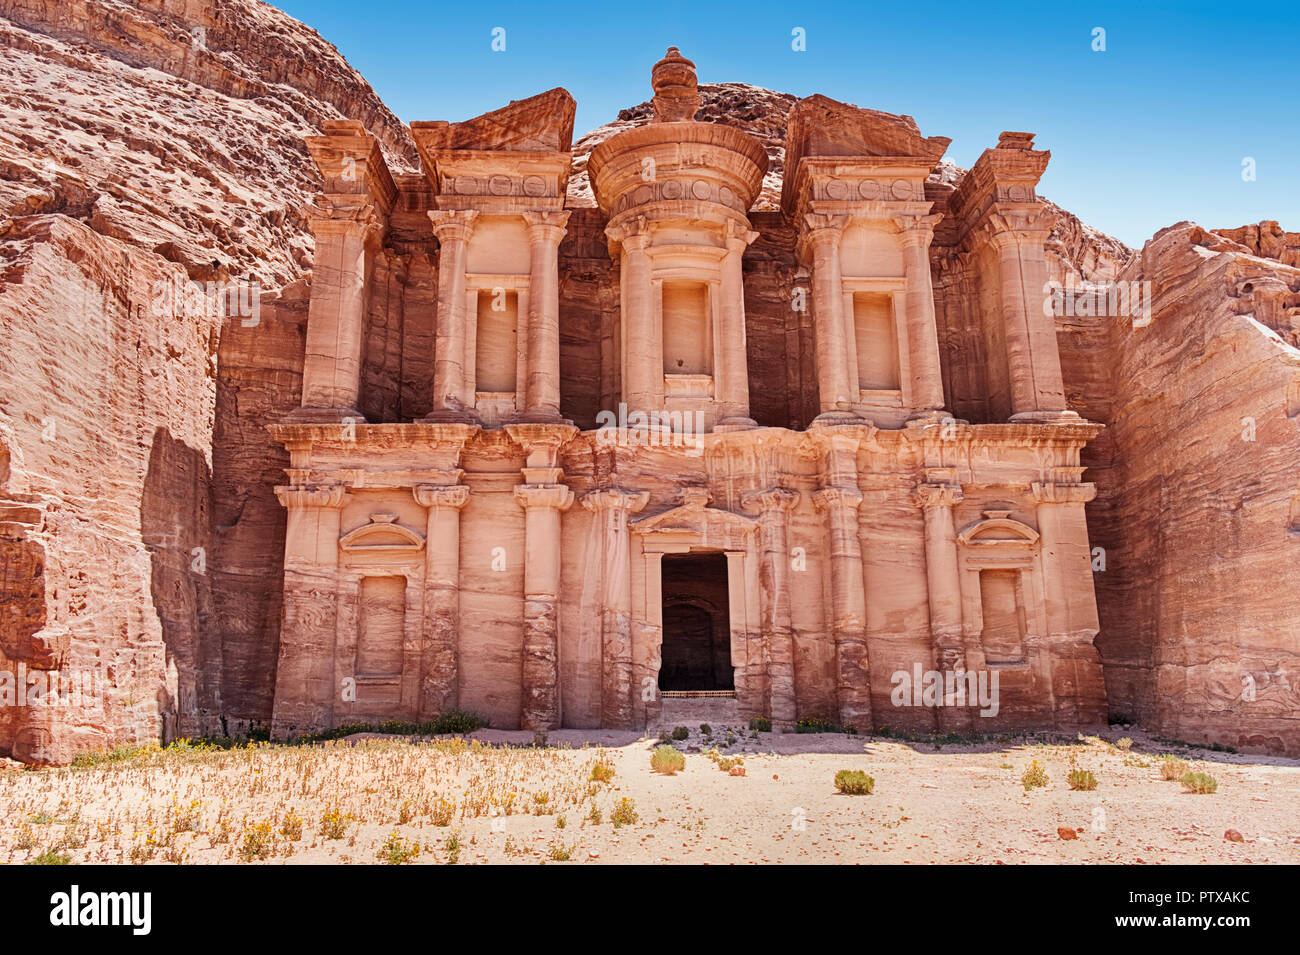 The Monastery of Petra is the largest of the magnificent carved tombs from the ancient necroplis that still exists. - Stock Image